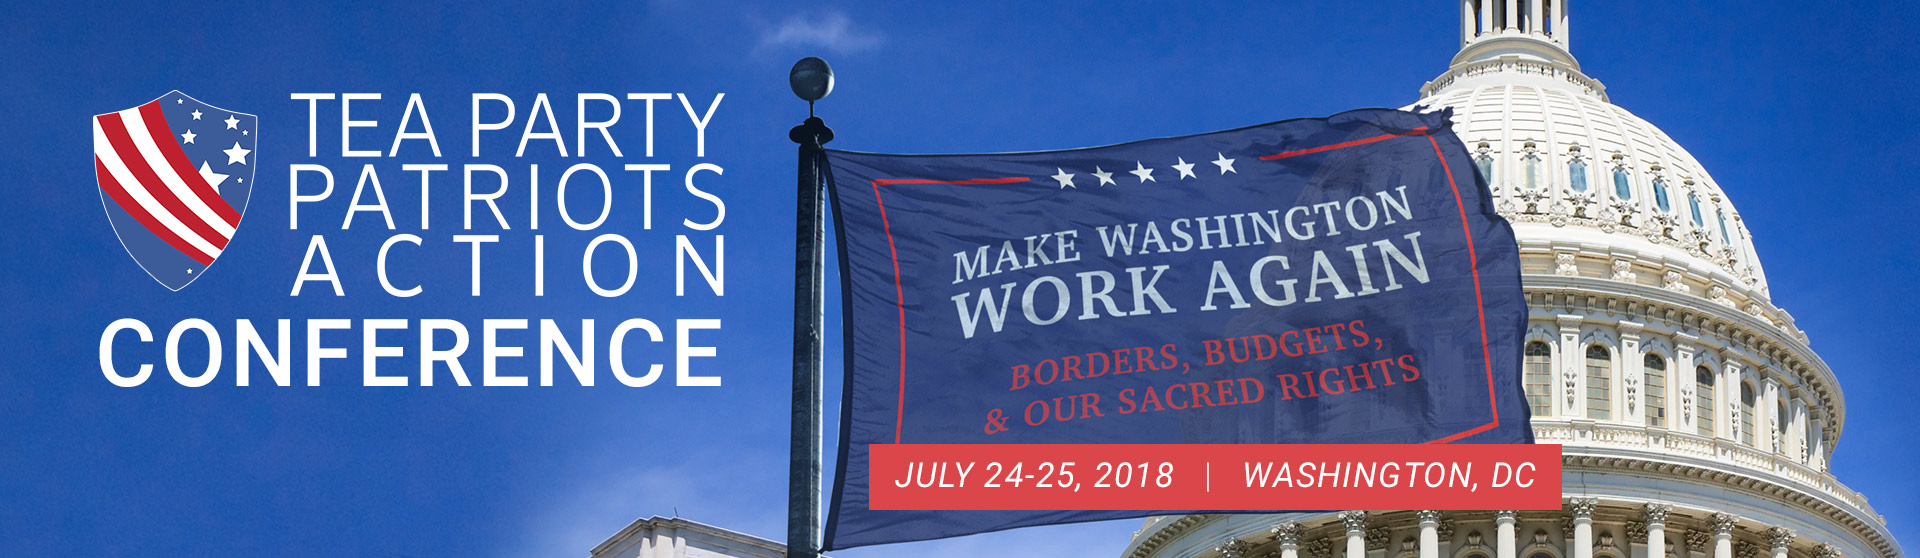 Make Washington Work Again: Borders, Budgets, and our Sacred Rights